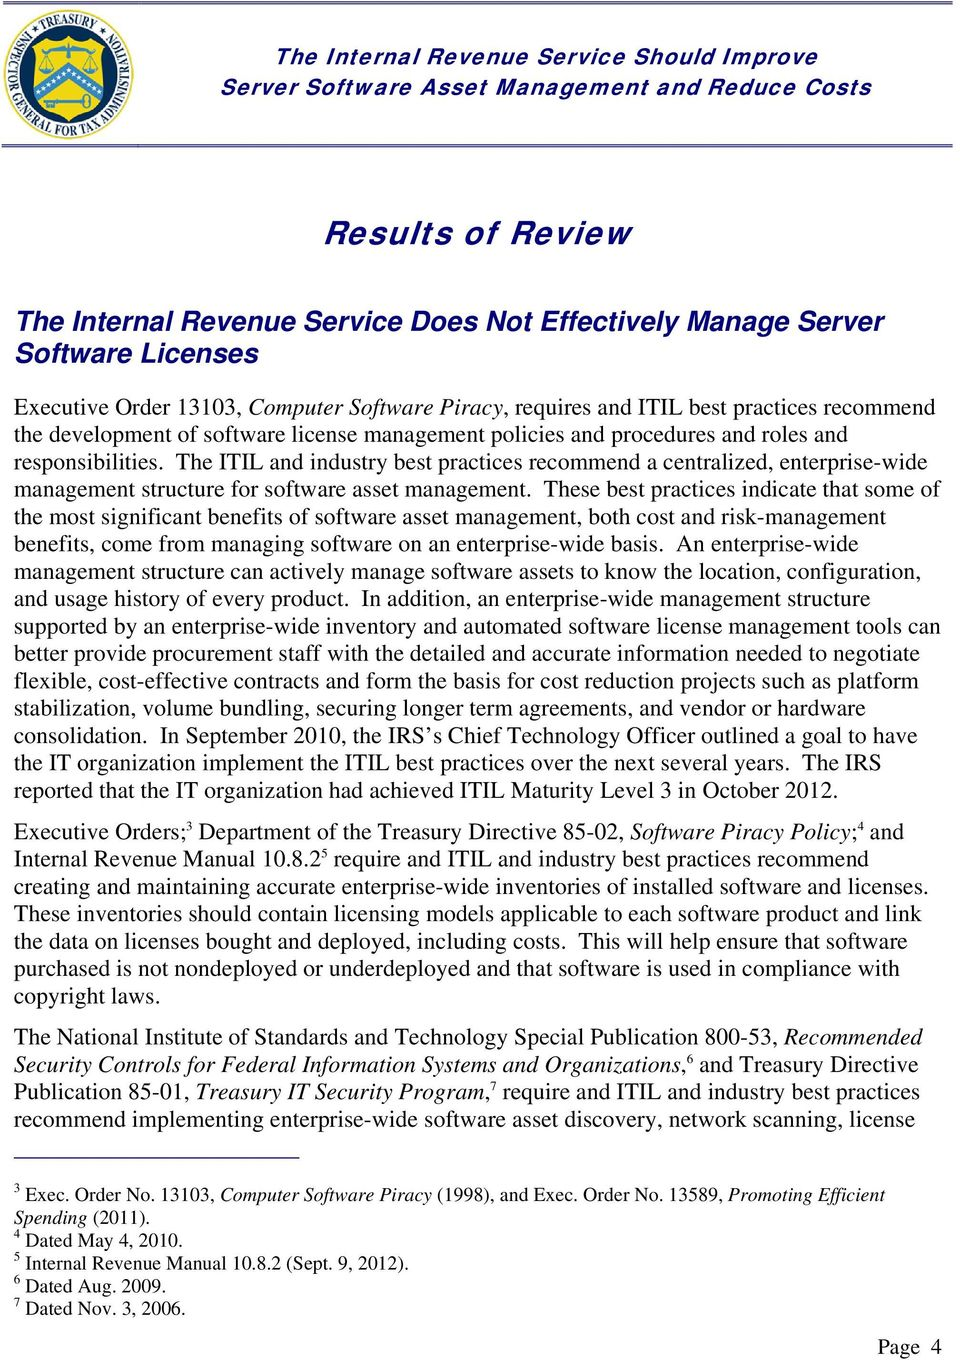 The ITIL and industry best practices recommend a centralized, enterprise-wide management structure for software asset management.